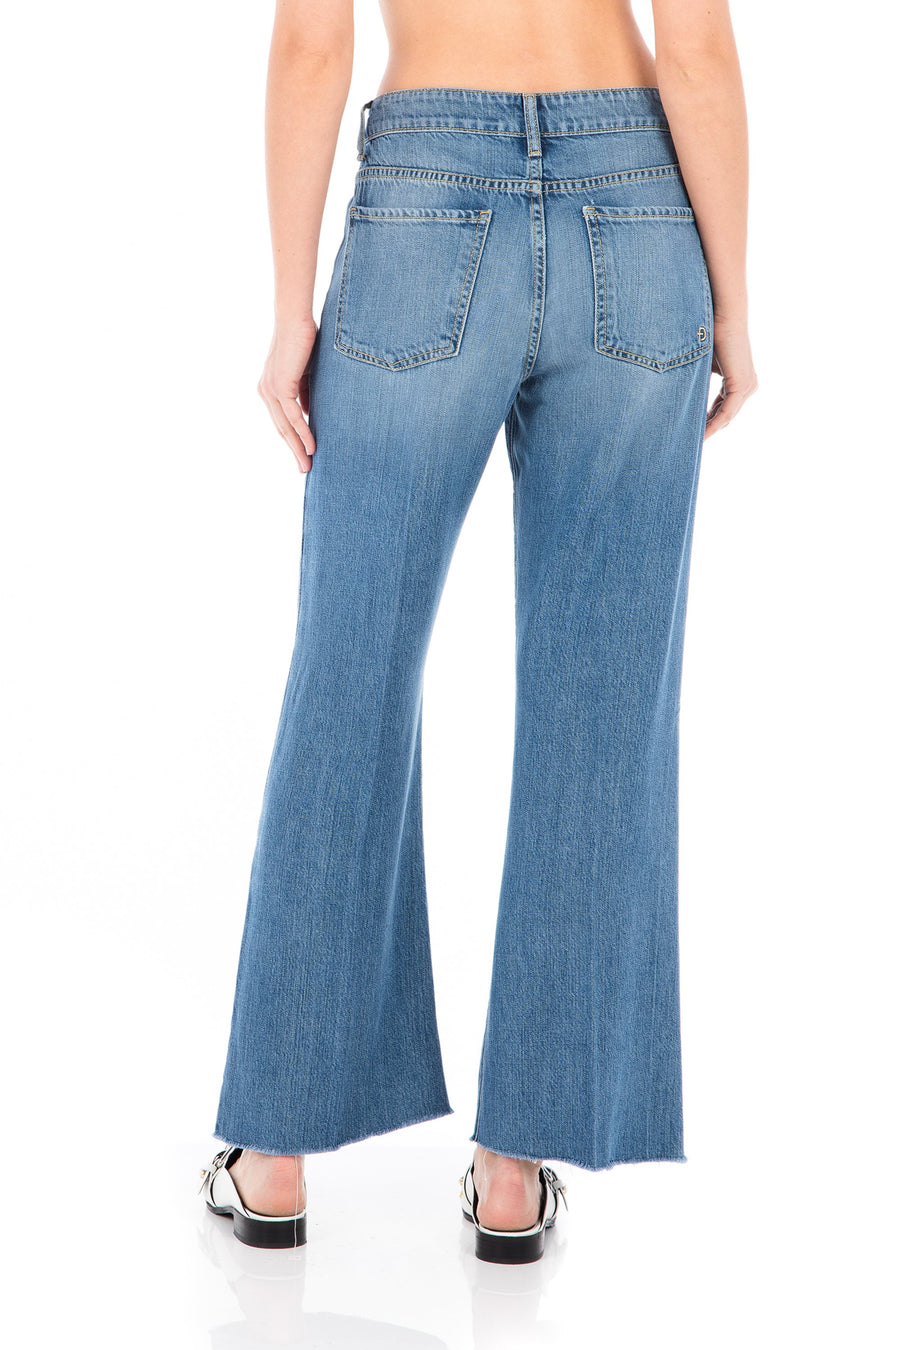 Fidelity Talia Denim in Harem Blue